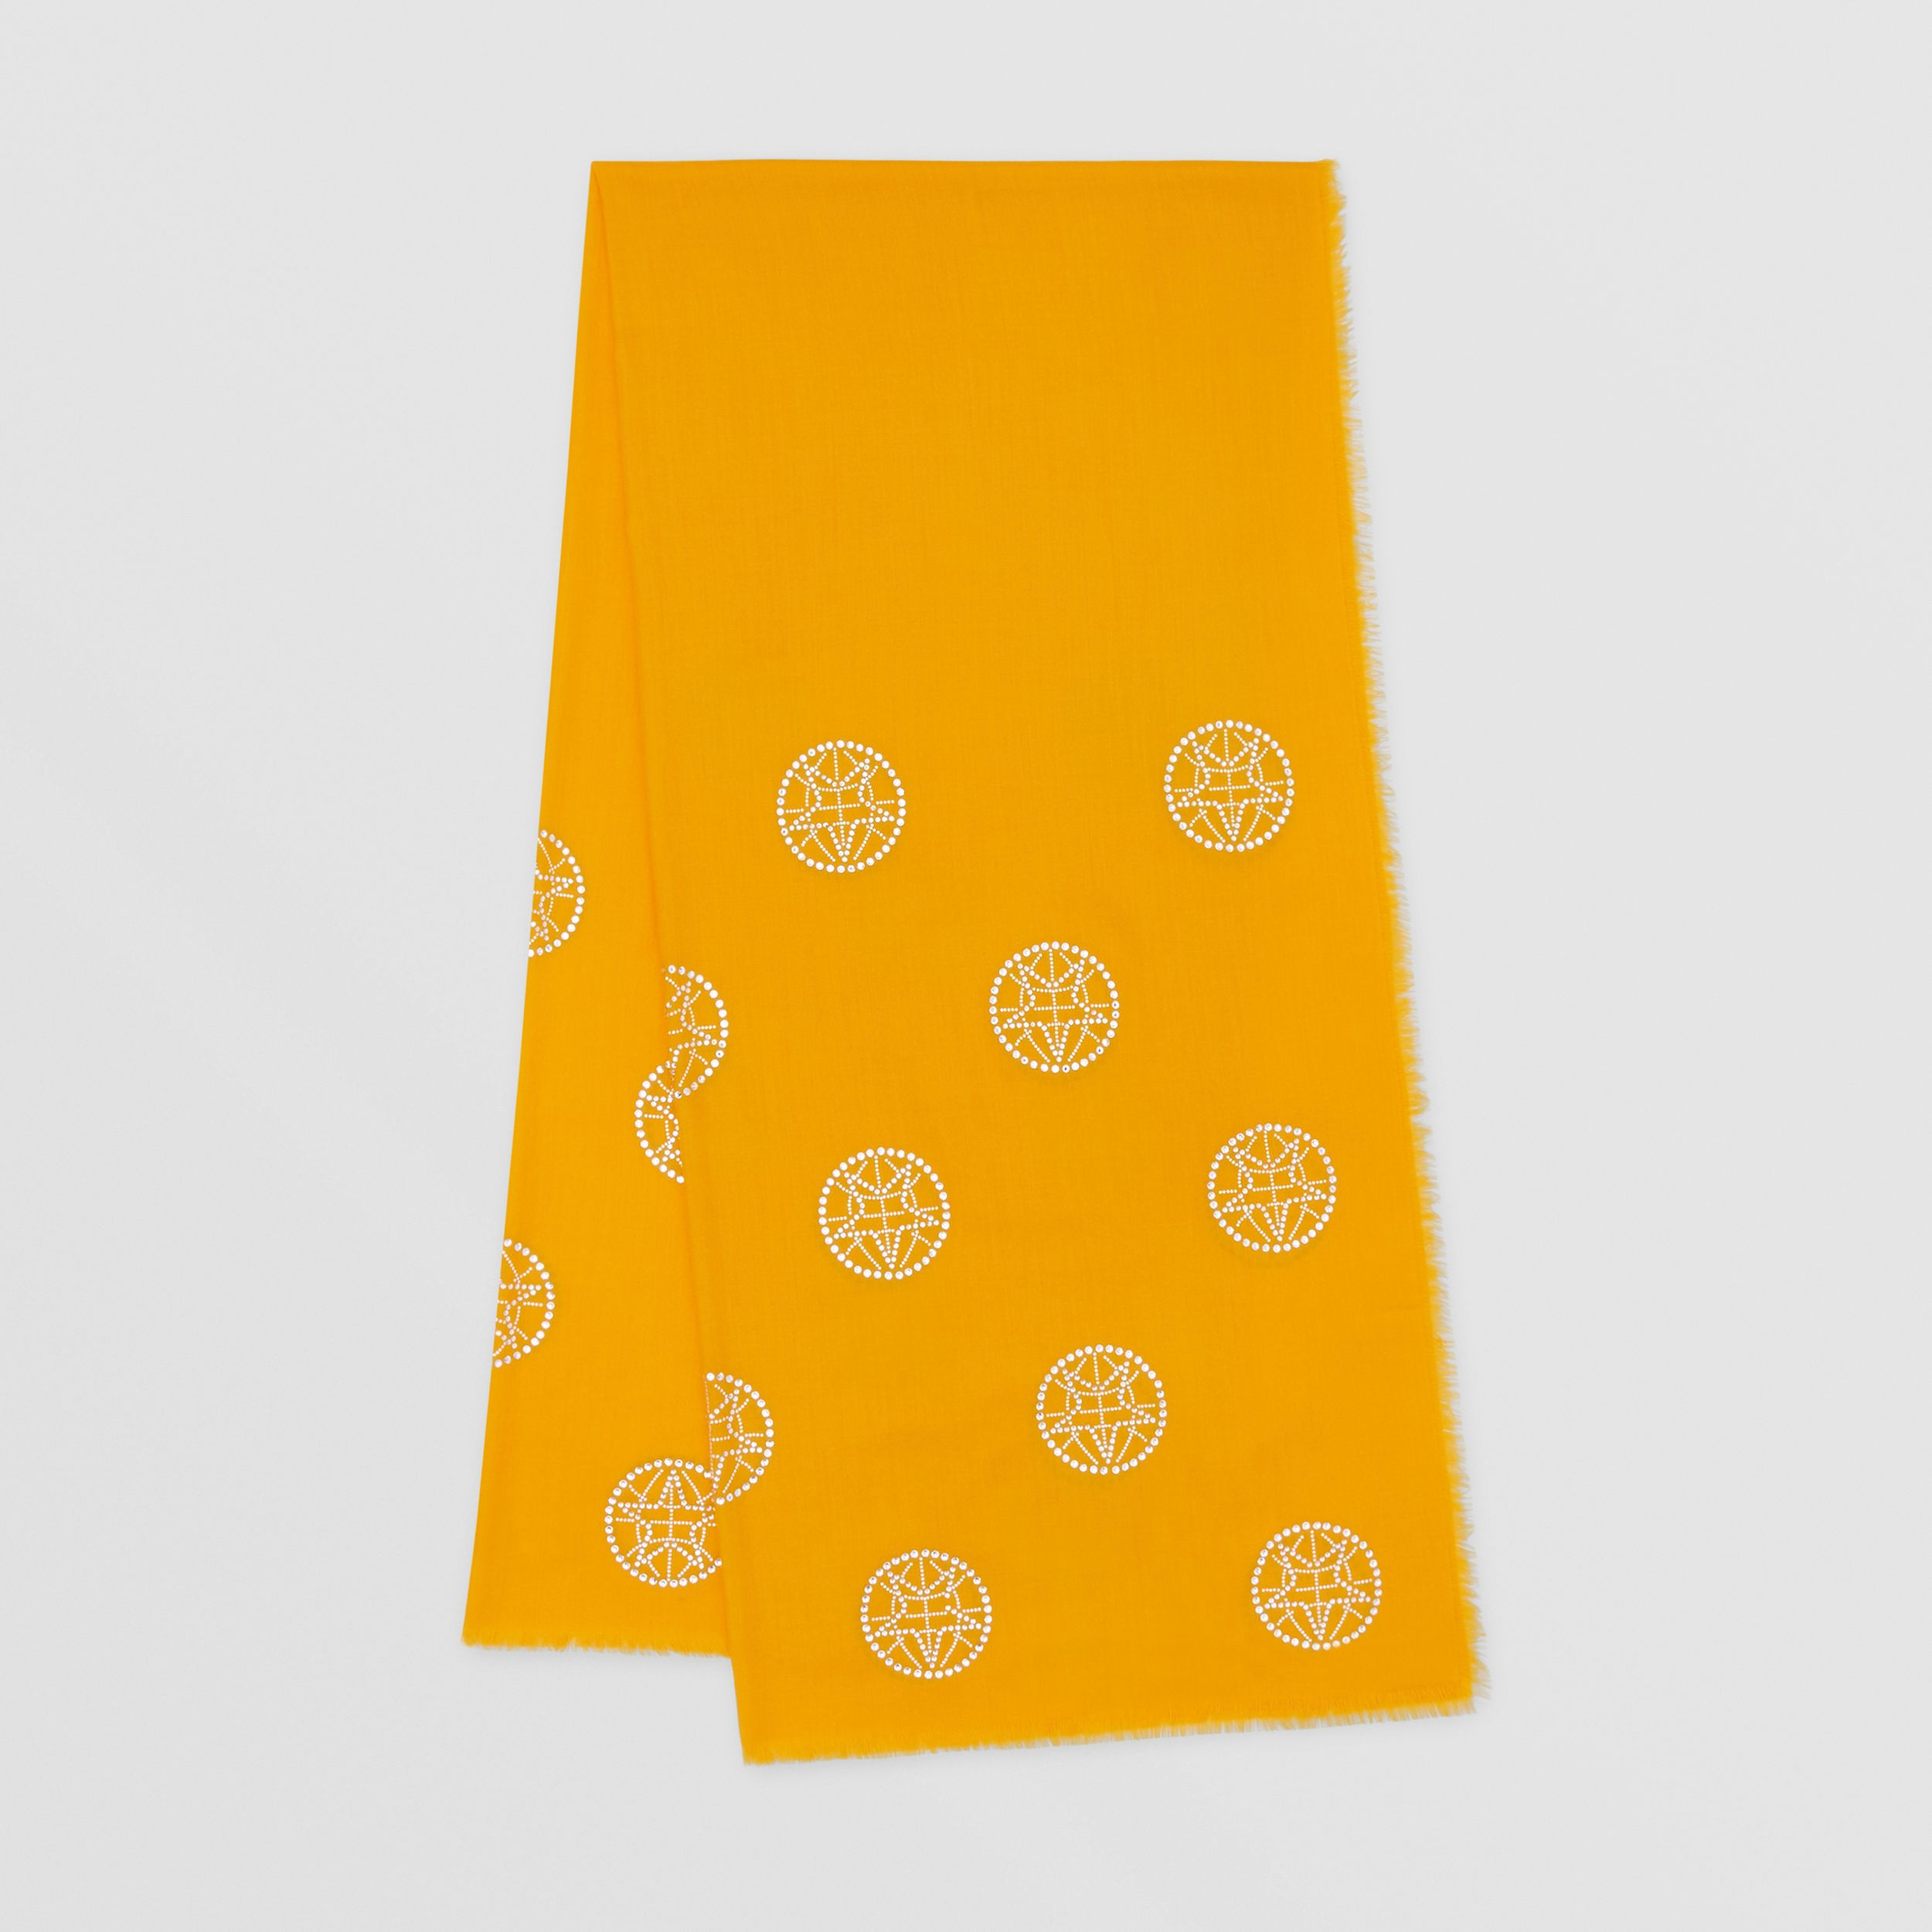 Crystal Globe Graphic Lightweight Cashmere Scarf in Citrus Orange | Burberry - 1